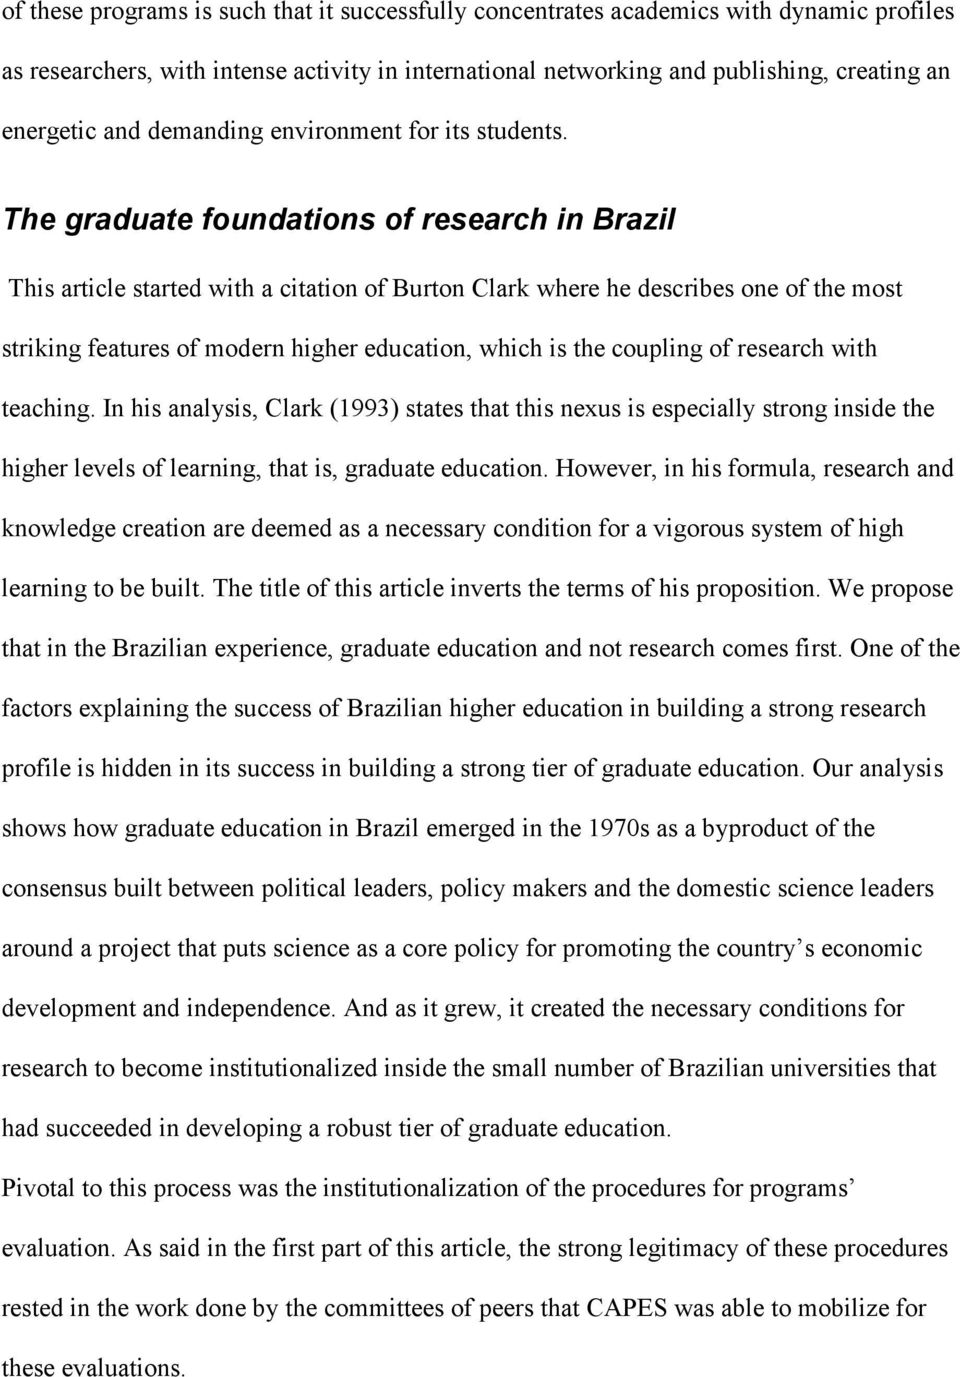 The graduate foundations of research in Brazil This article started with a citation of Burton Clark where he describes one of the most striking features of modern higher education, which is the